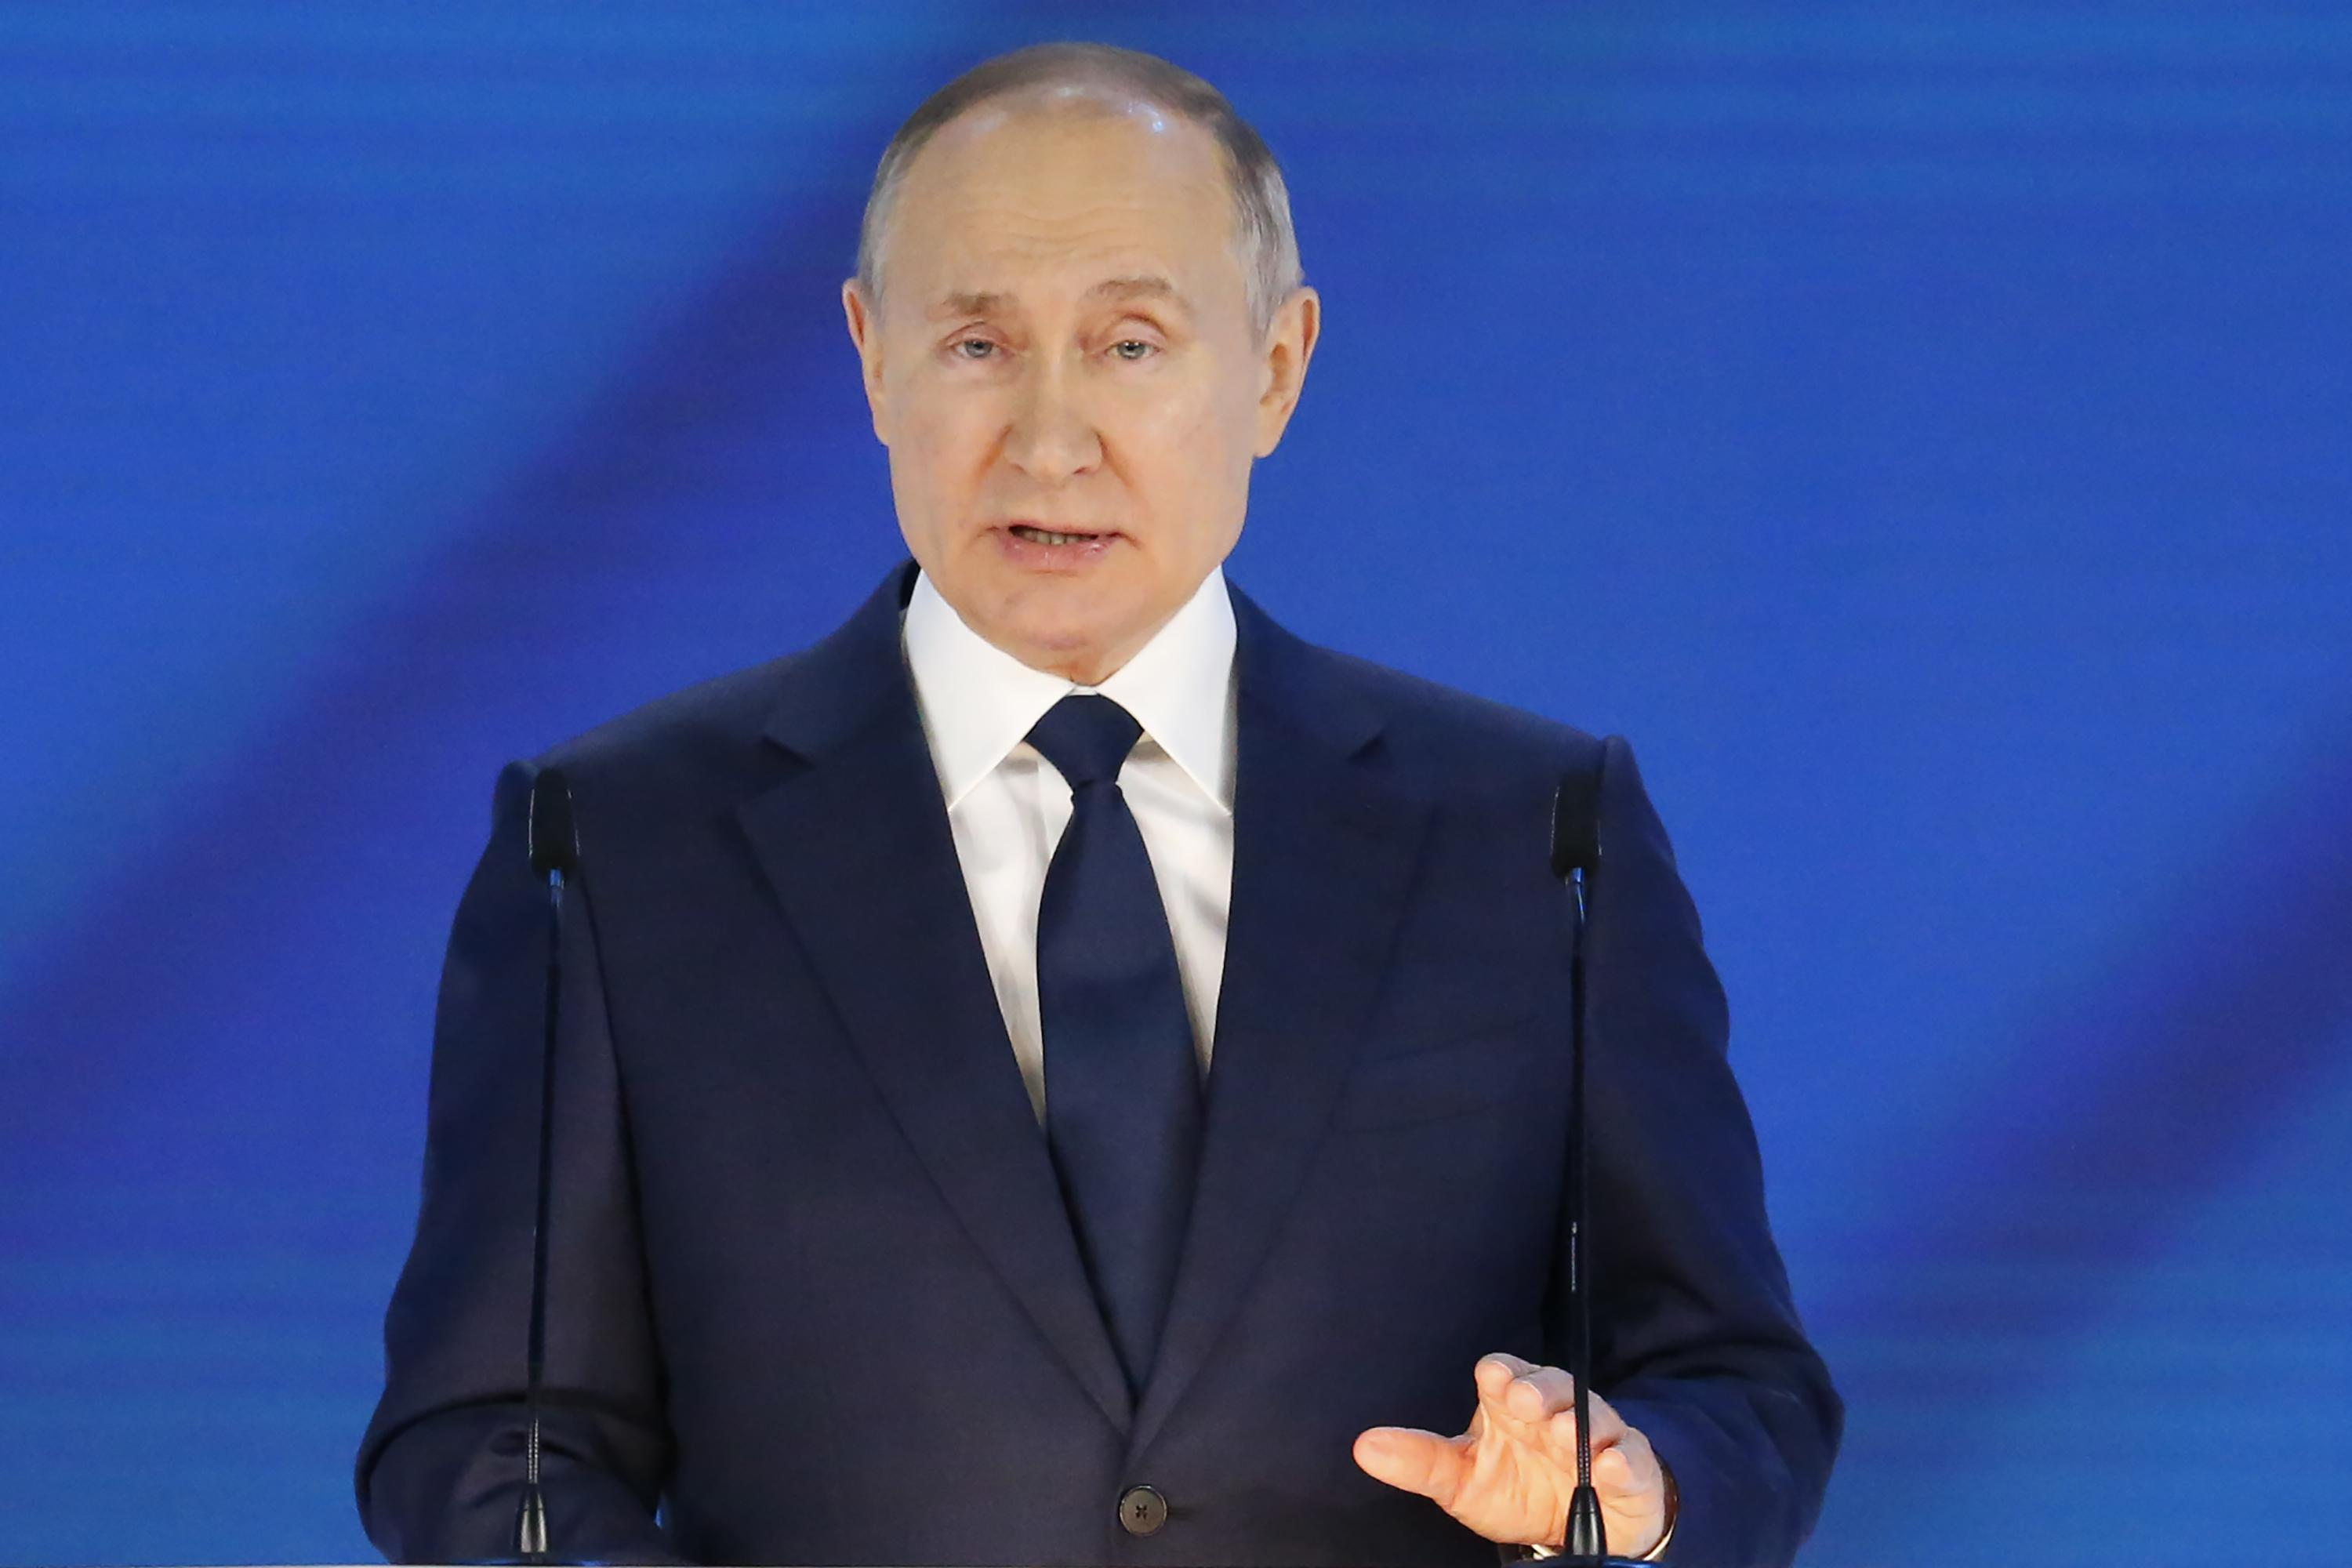 Putin, in annual address, lauds Russia's vaccine work